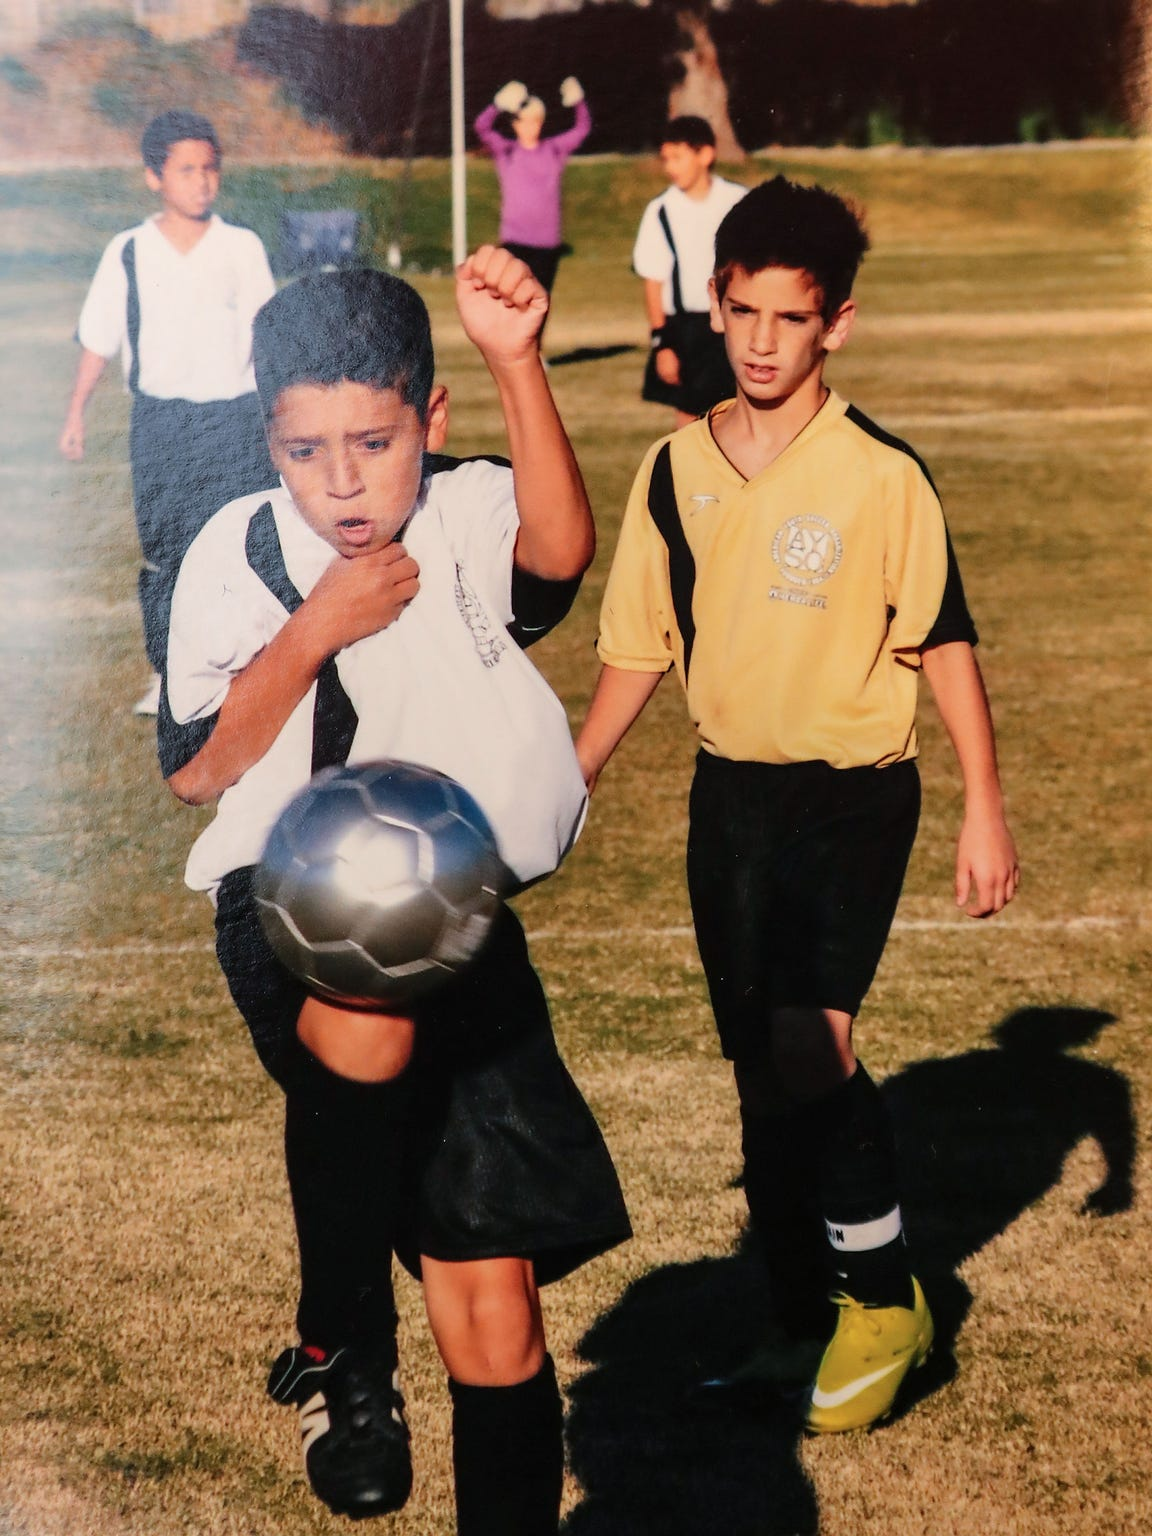 Kevin Salamone, left, started playing soccer in his youth, then joined the Shadow Hills High team as a freshman. He suffered a life-changing concussion during his senior season, which has forced him to abandon the sport.